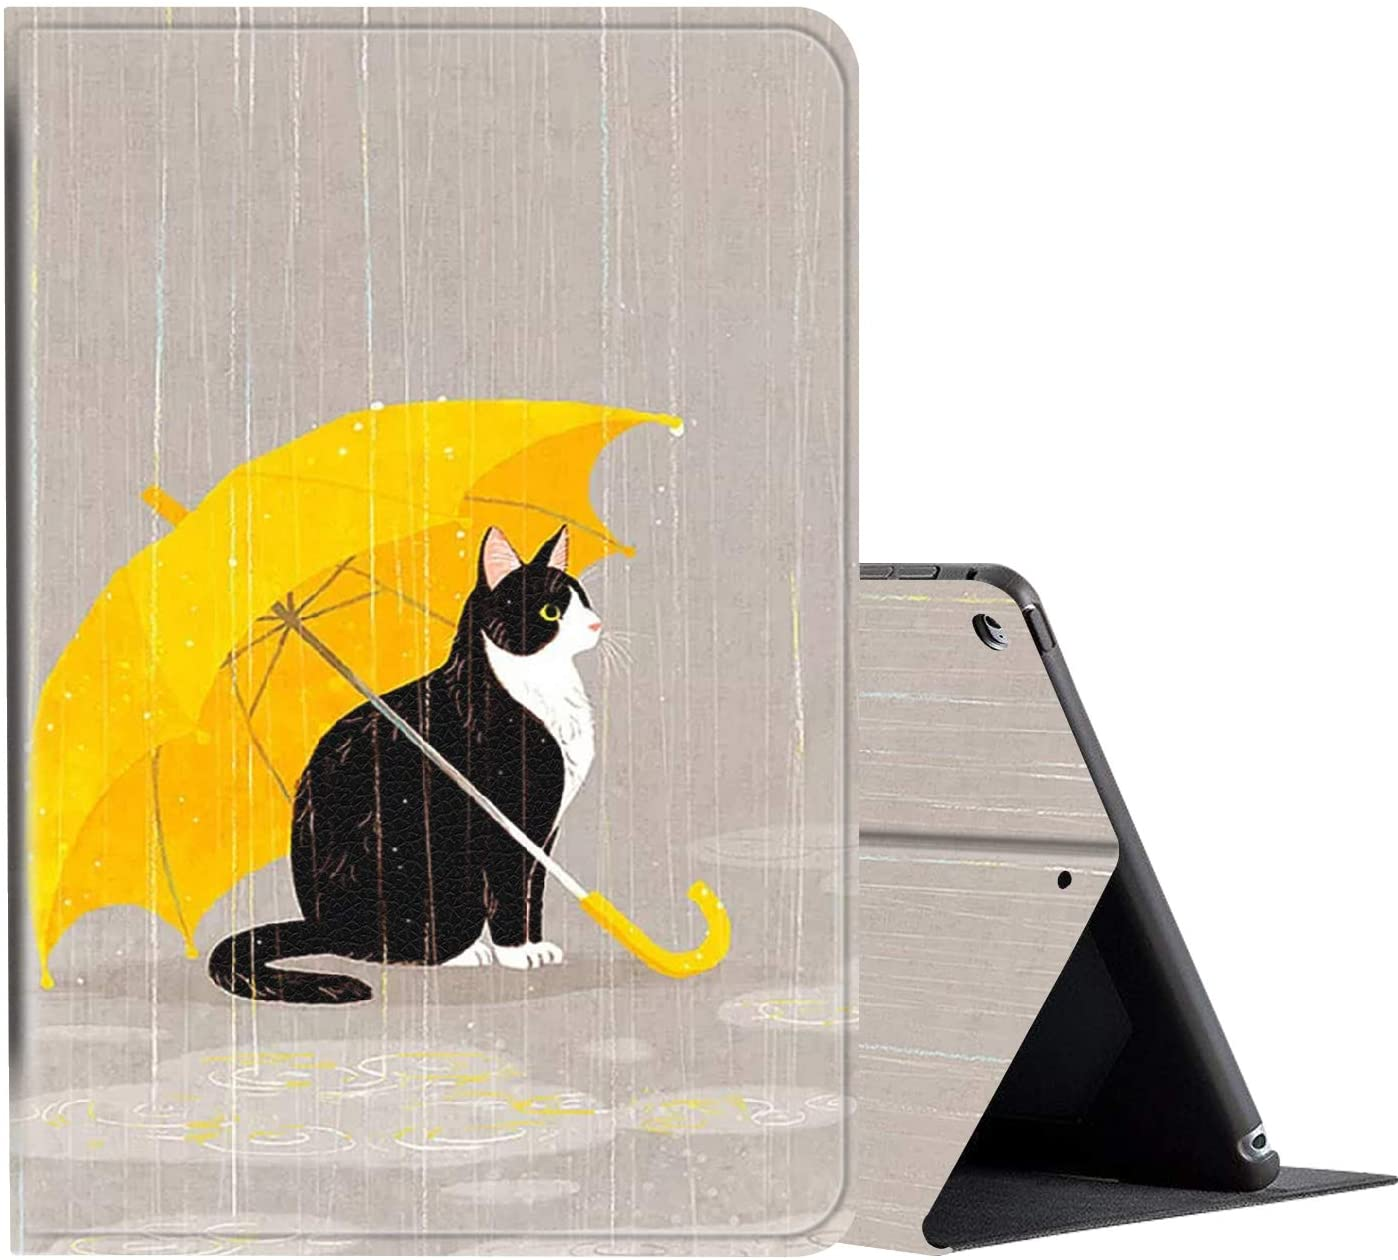 iPad 10.2 Case (2020/2019) 8th/7th Generation ipad Case,Amook Adjustable Non-Slip Folio Stand with Auto Wake/Sleep Smart Cover for New Apple iPad 8/7 Gen 10.2 inch-Cat Under Umbrella